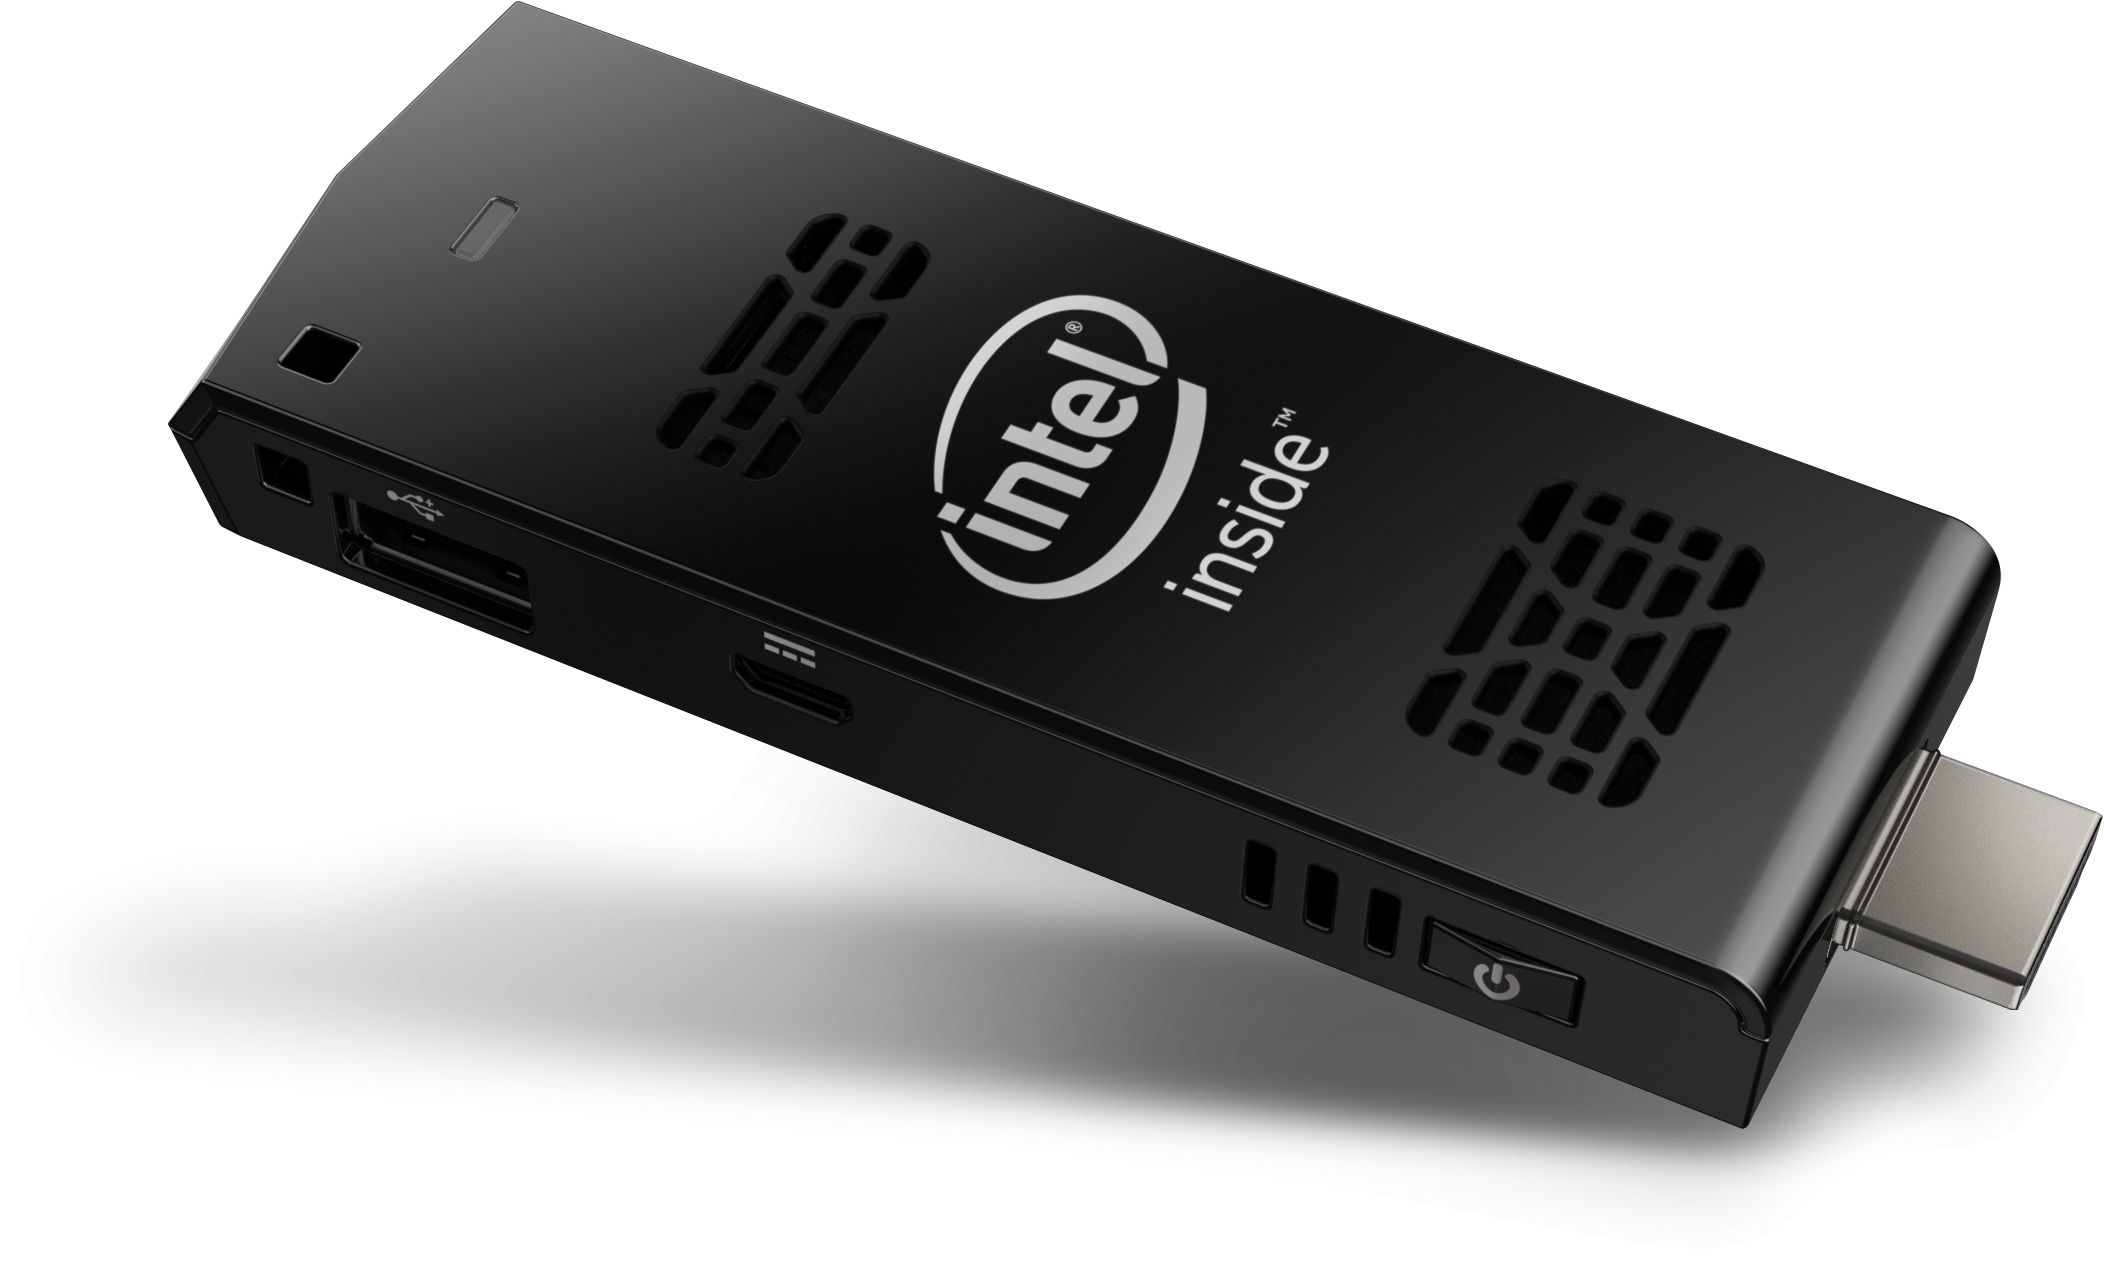 Intel Compute Stick Image